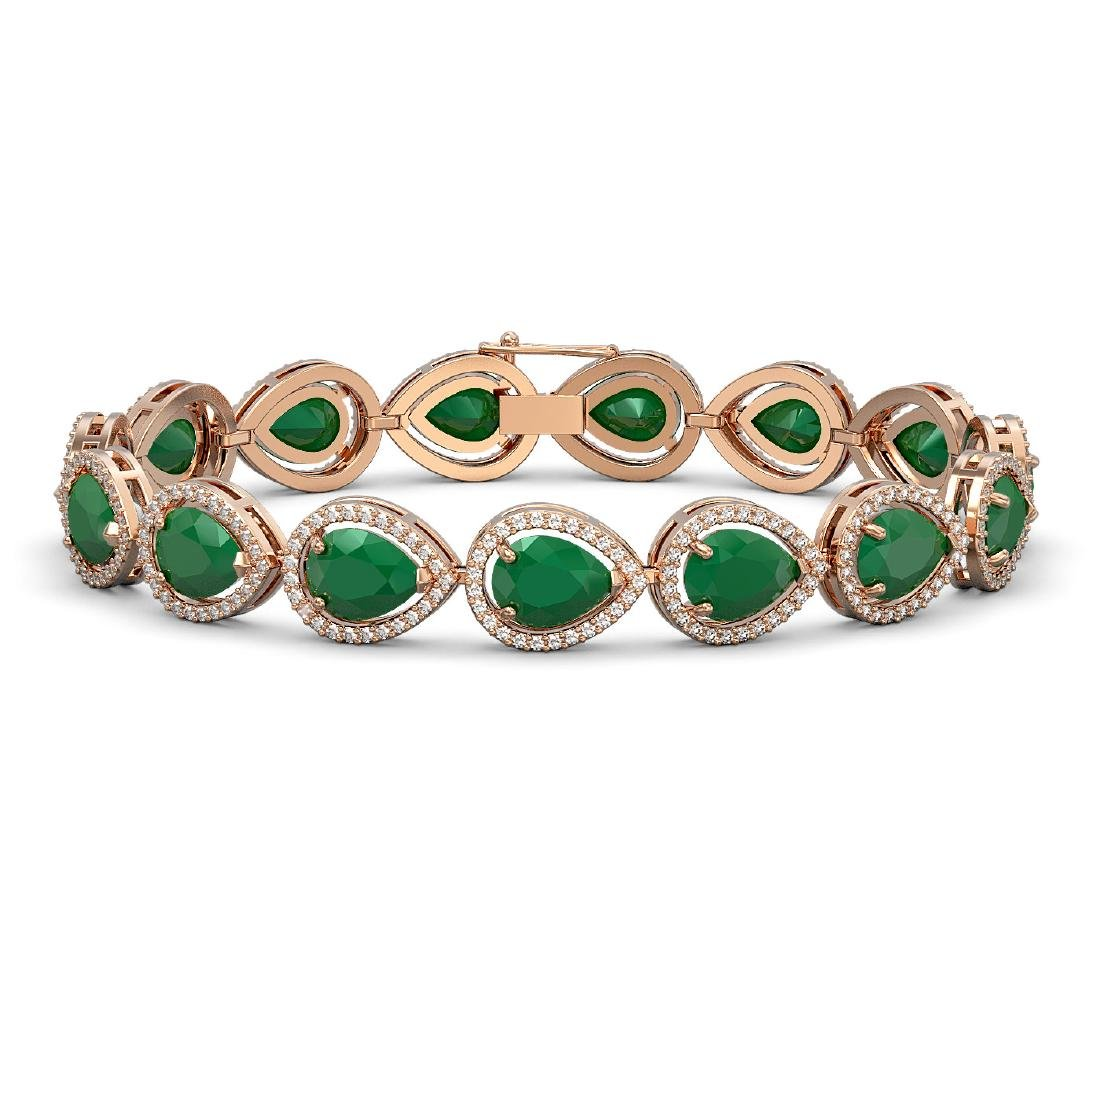 30.06 CTW Emerald & Diamond Halo Bracelet 10K Rose Gold